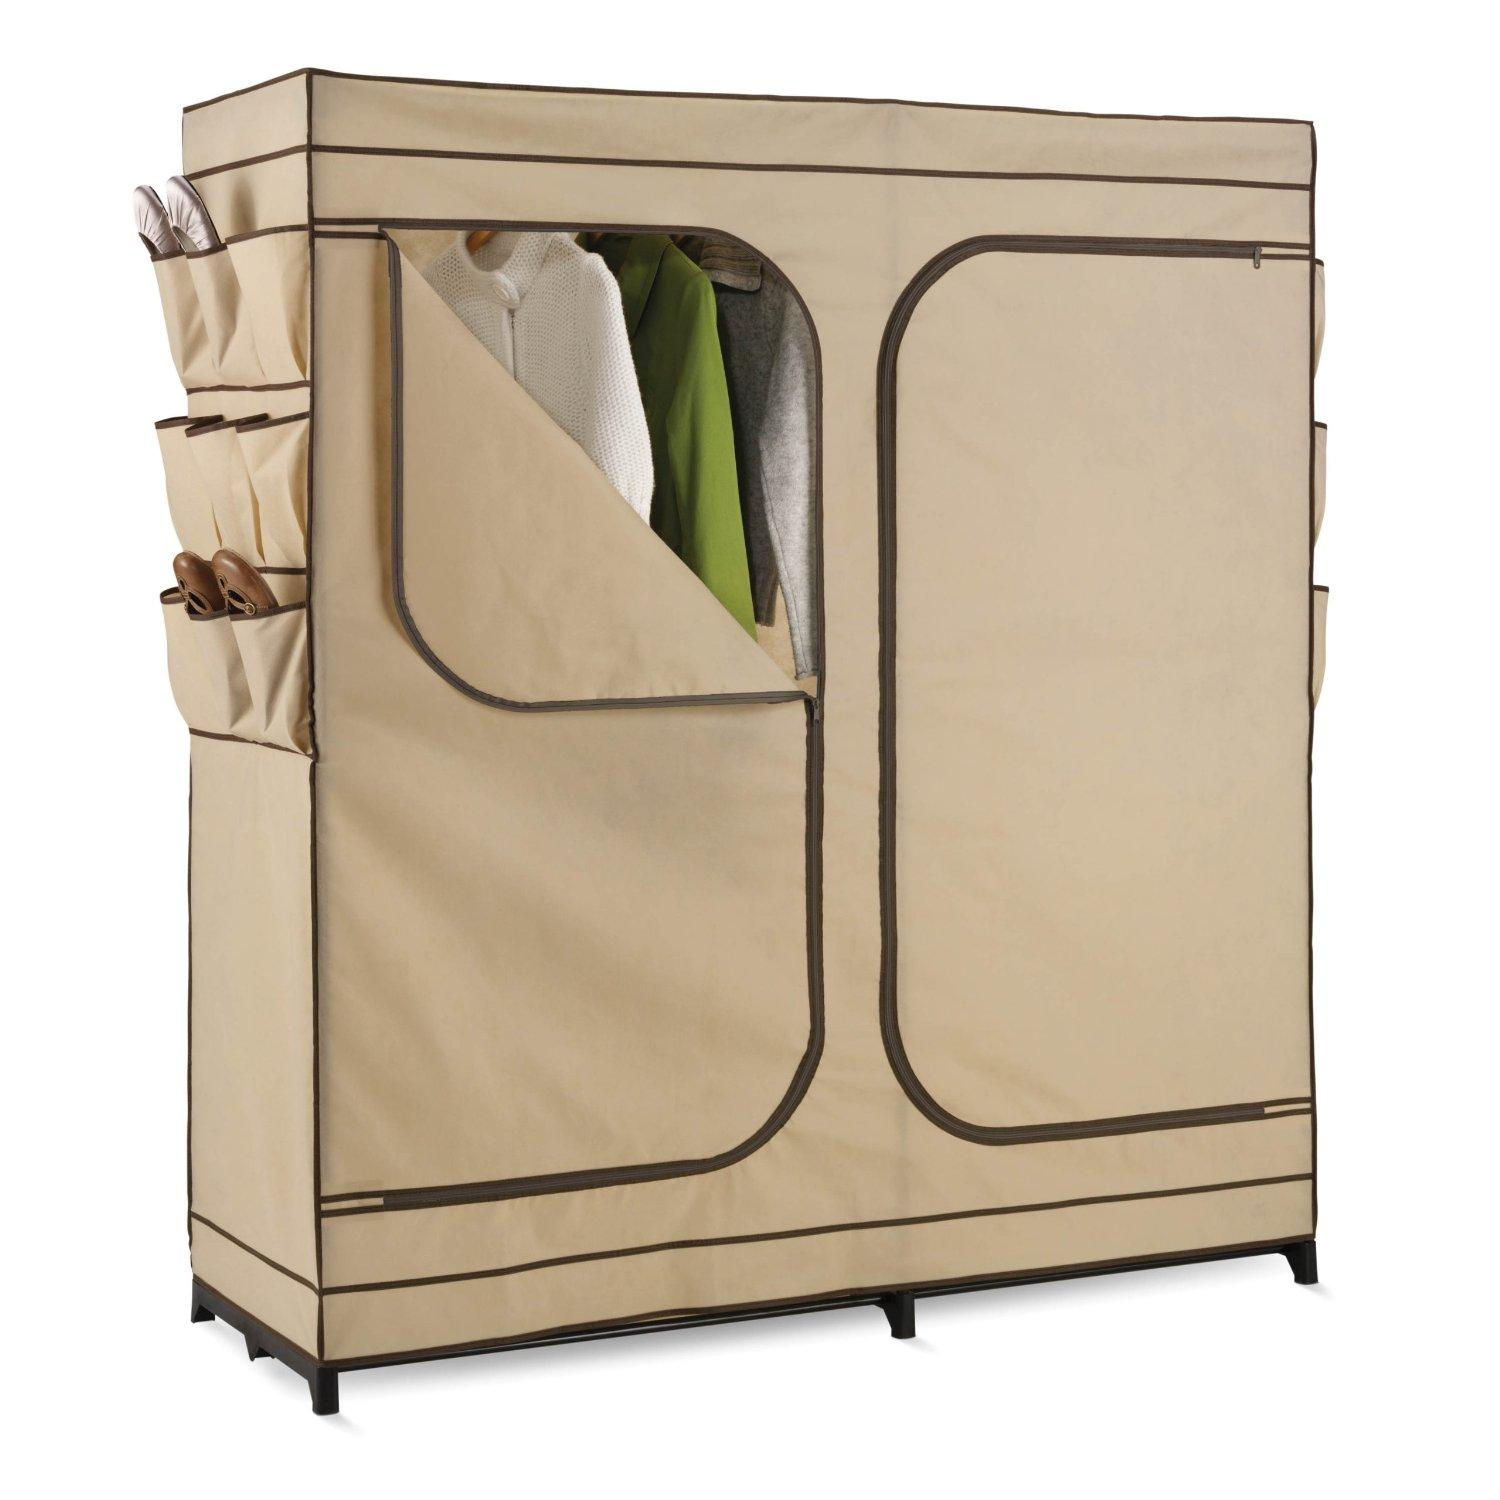 Honey-Can-Do WRD-01272 Double Door Storage Closet with Shoe Organizer, 60-Inch